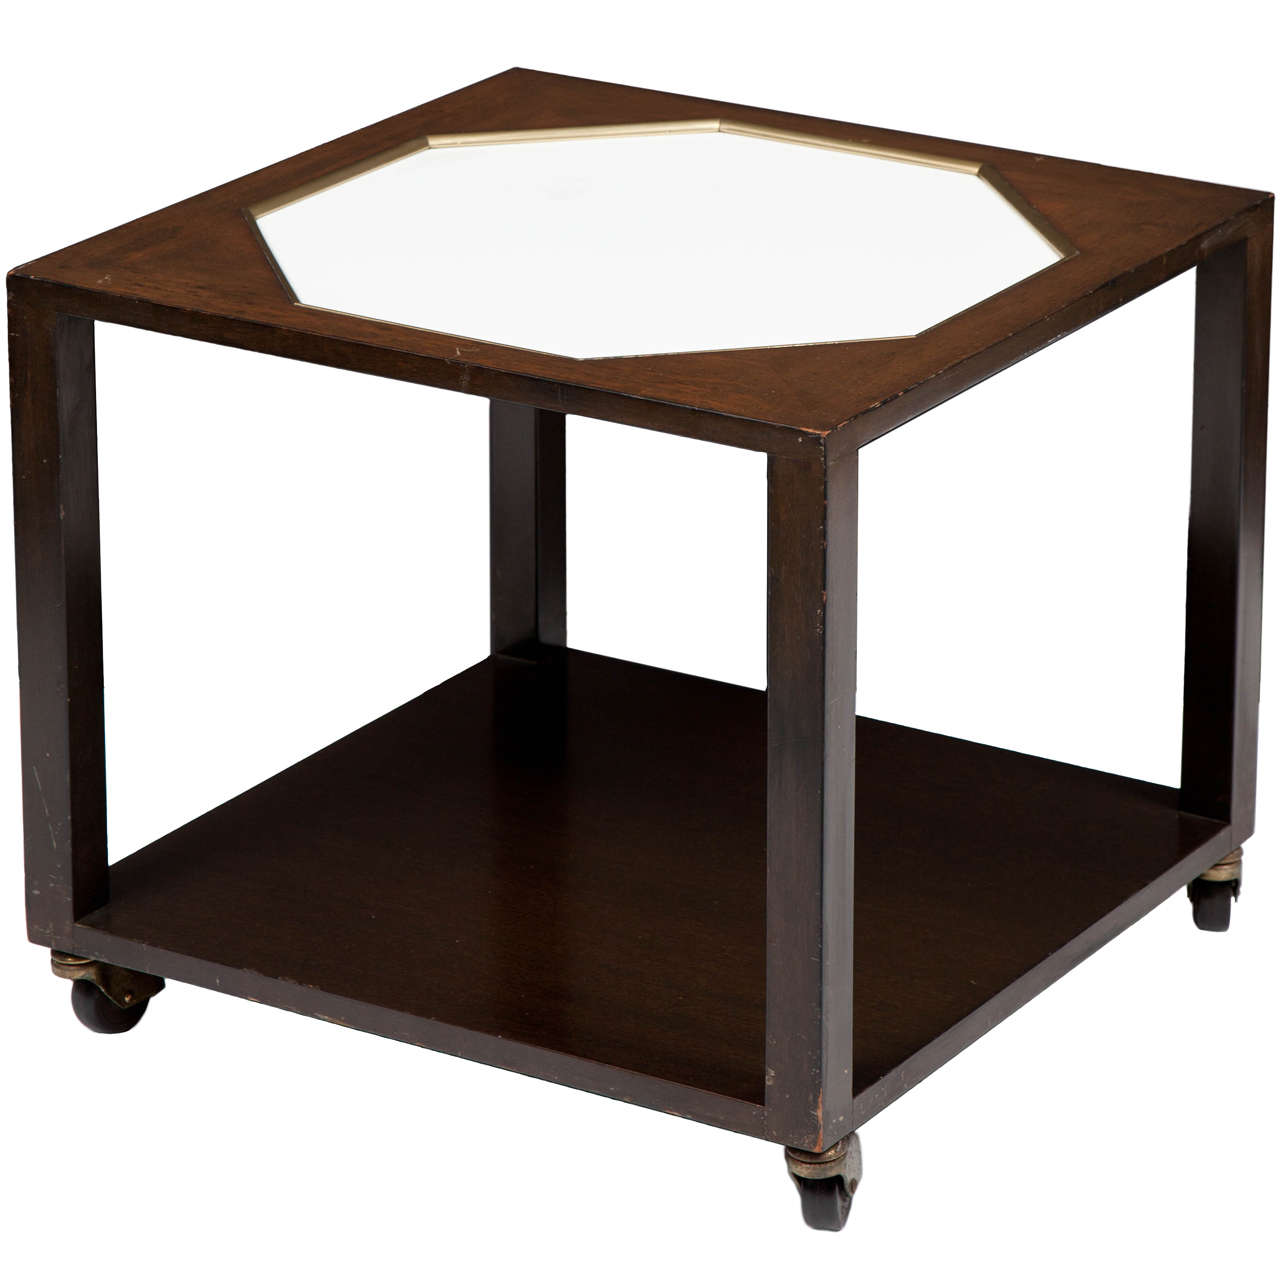 Walnut End Table with White Inset Top in the Manner of Harvey Probber